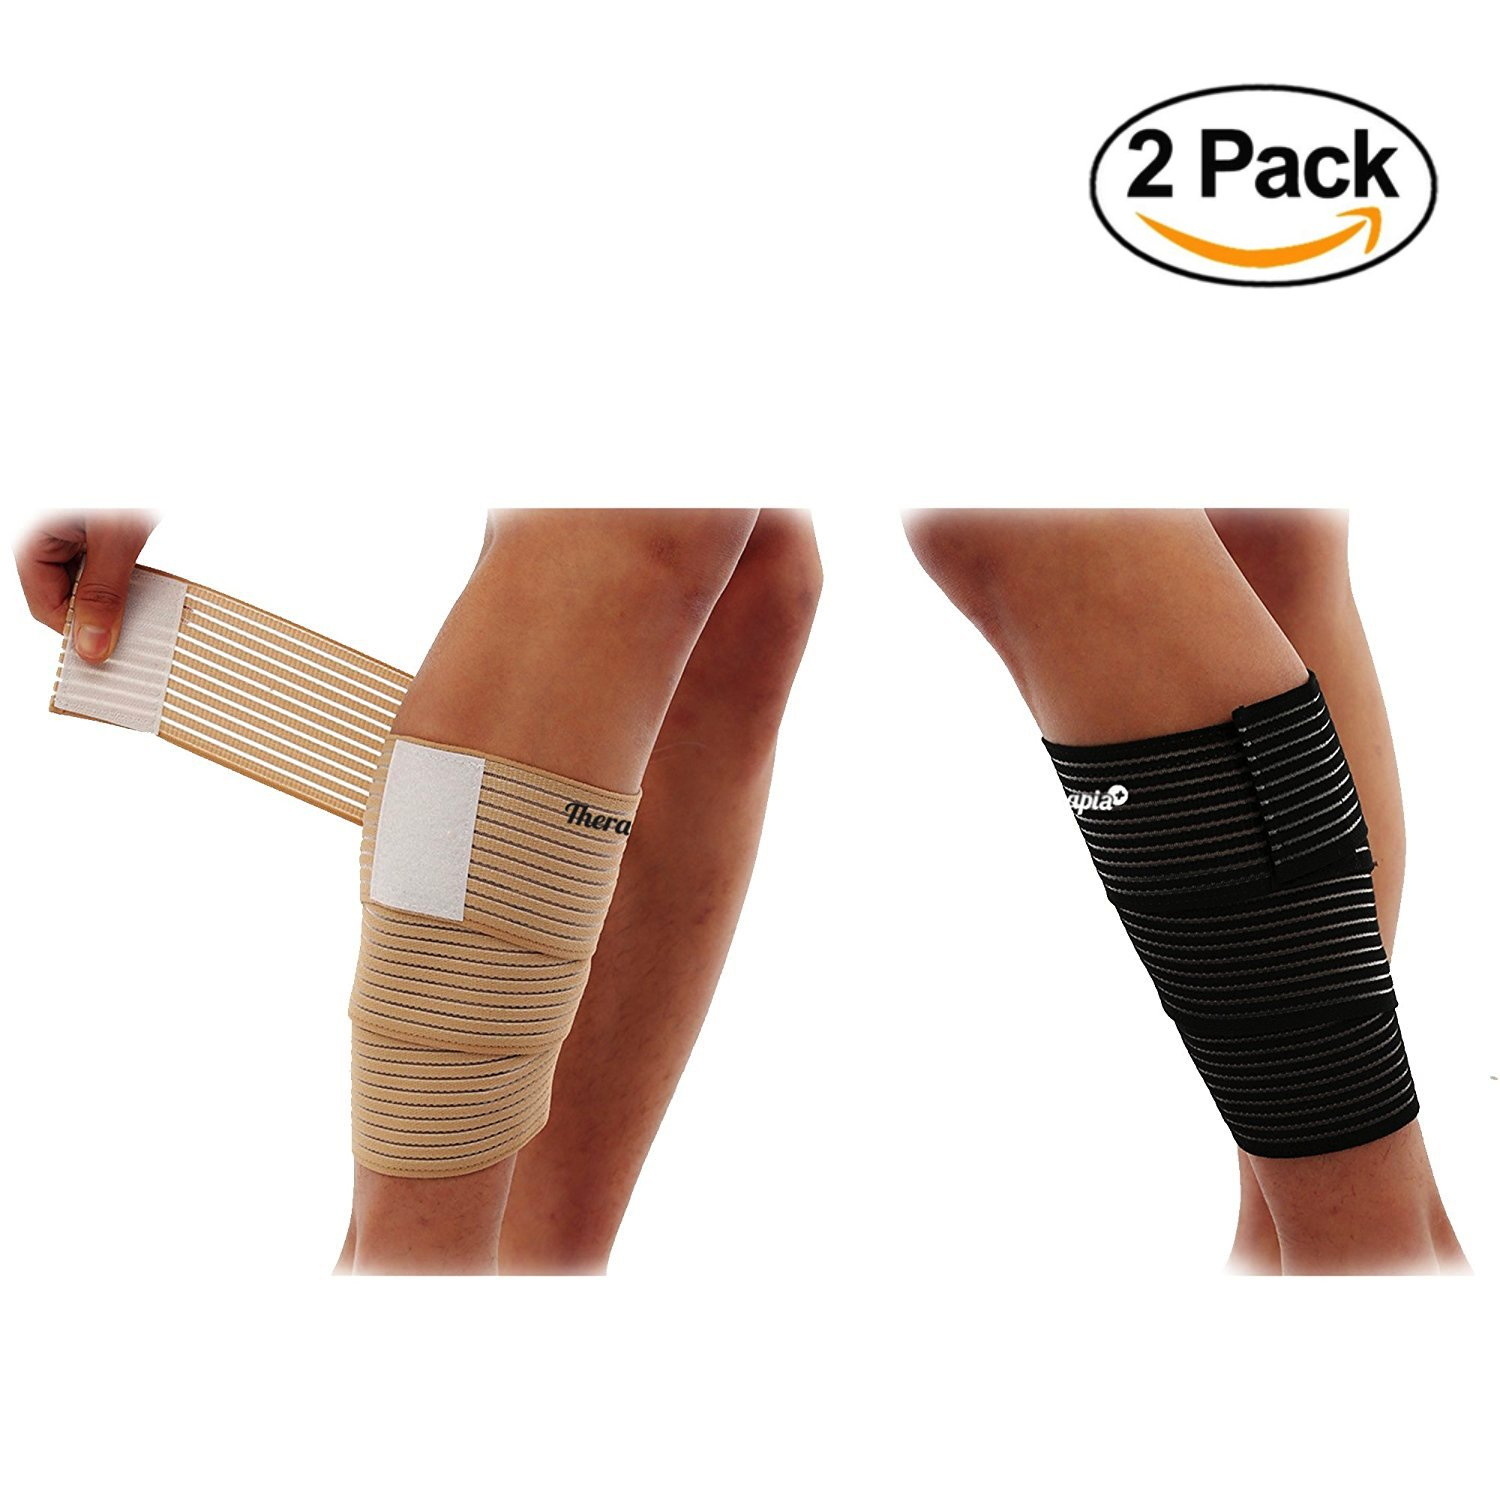 Calf Wraps for Running Sleeve Package Leg Wraps Calf Wraps Calf Guard for Men and Women 2 Pairs